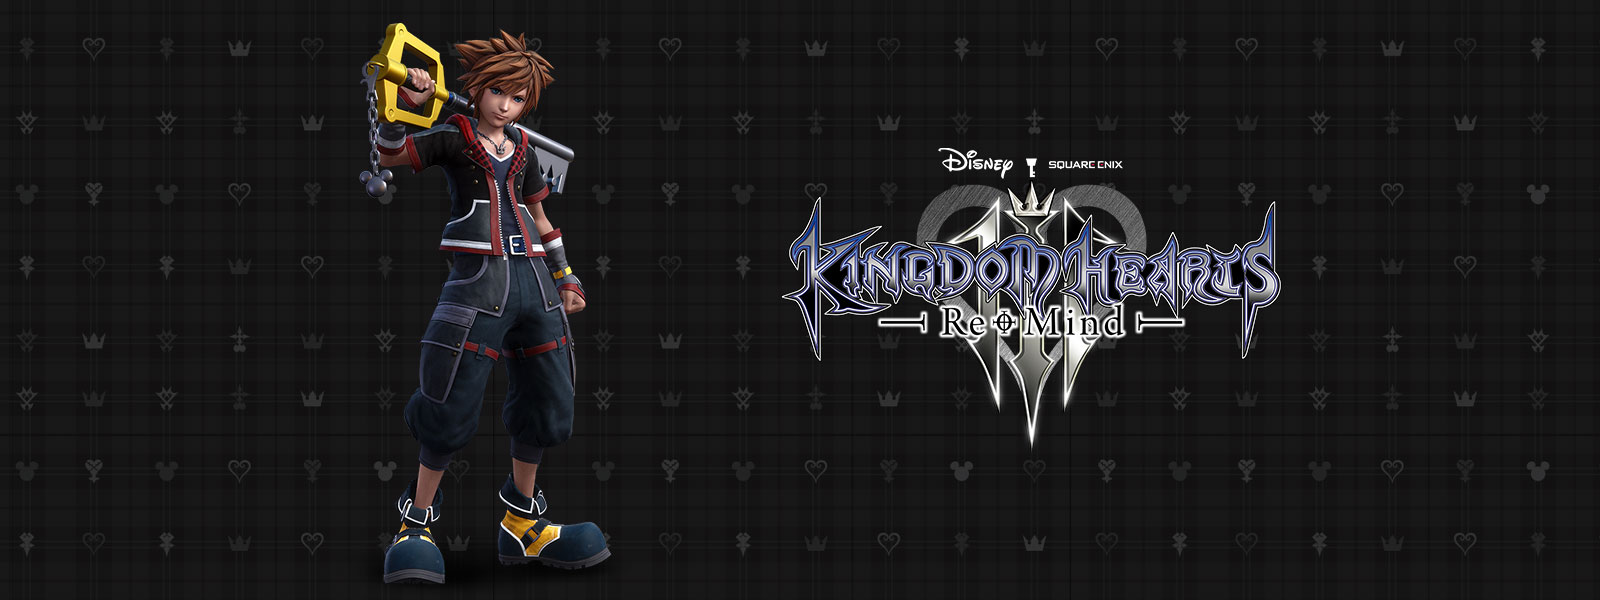 Disney Kingdom Hearts 3, Re-Mind, Sora stojí na čiernom pozadí so vzorom s Keybladom na ramene.